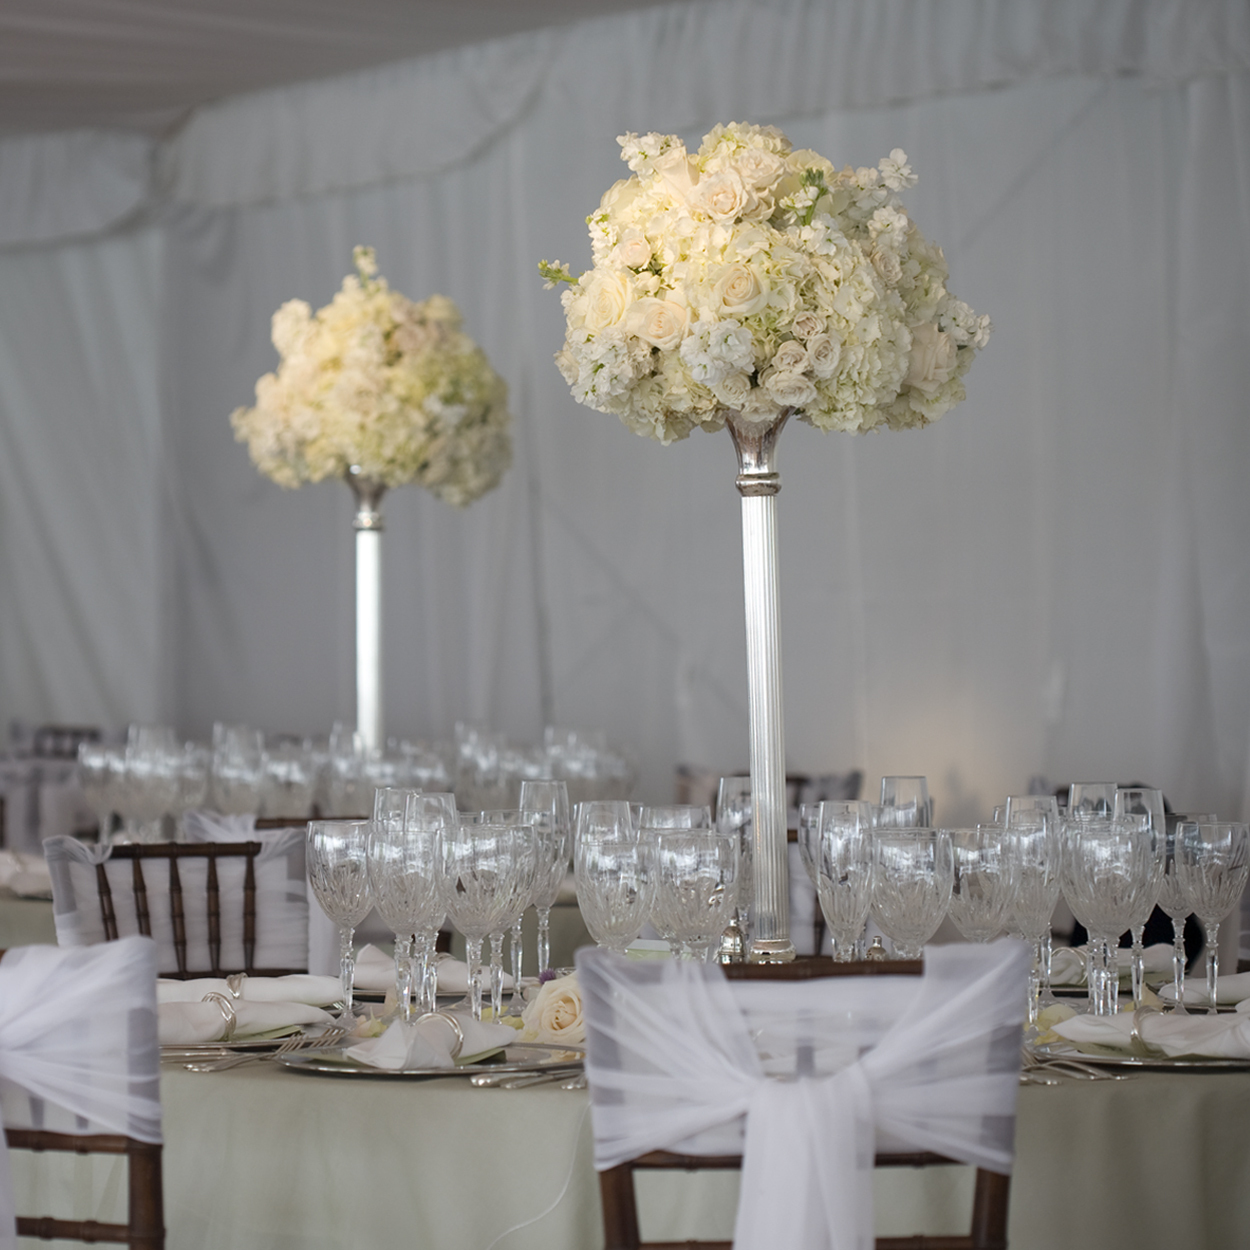 Reception, Flowers & Decor, white, Centerpieces, Flowers, Centerpiece, Nantucket, Soiree floral